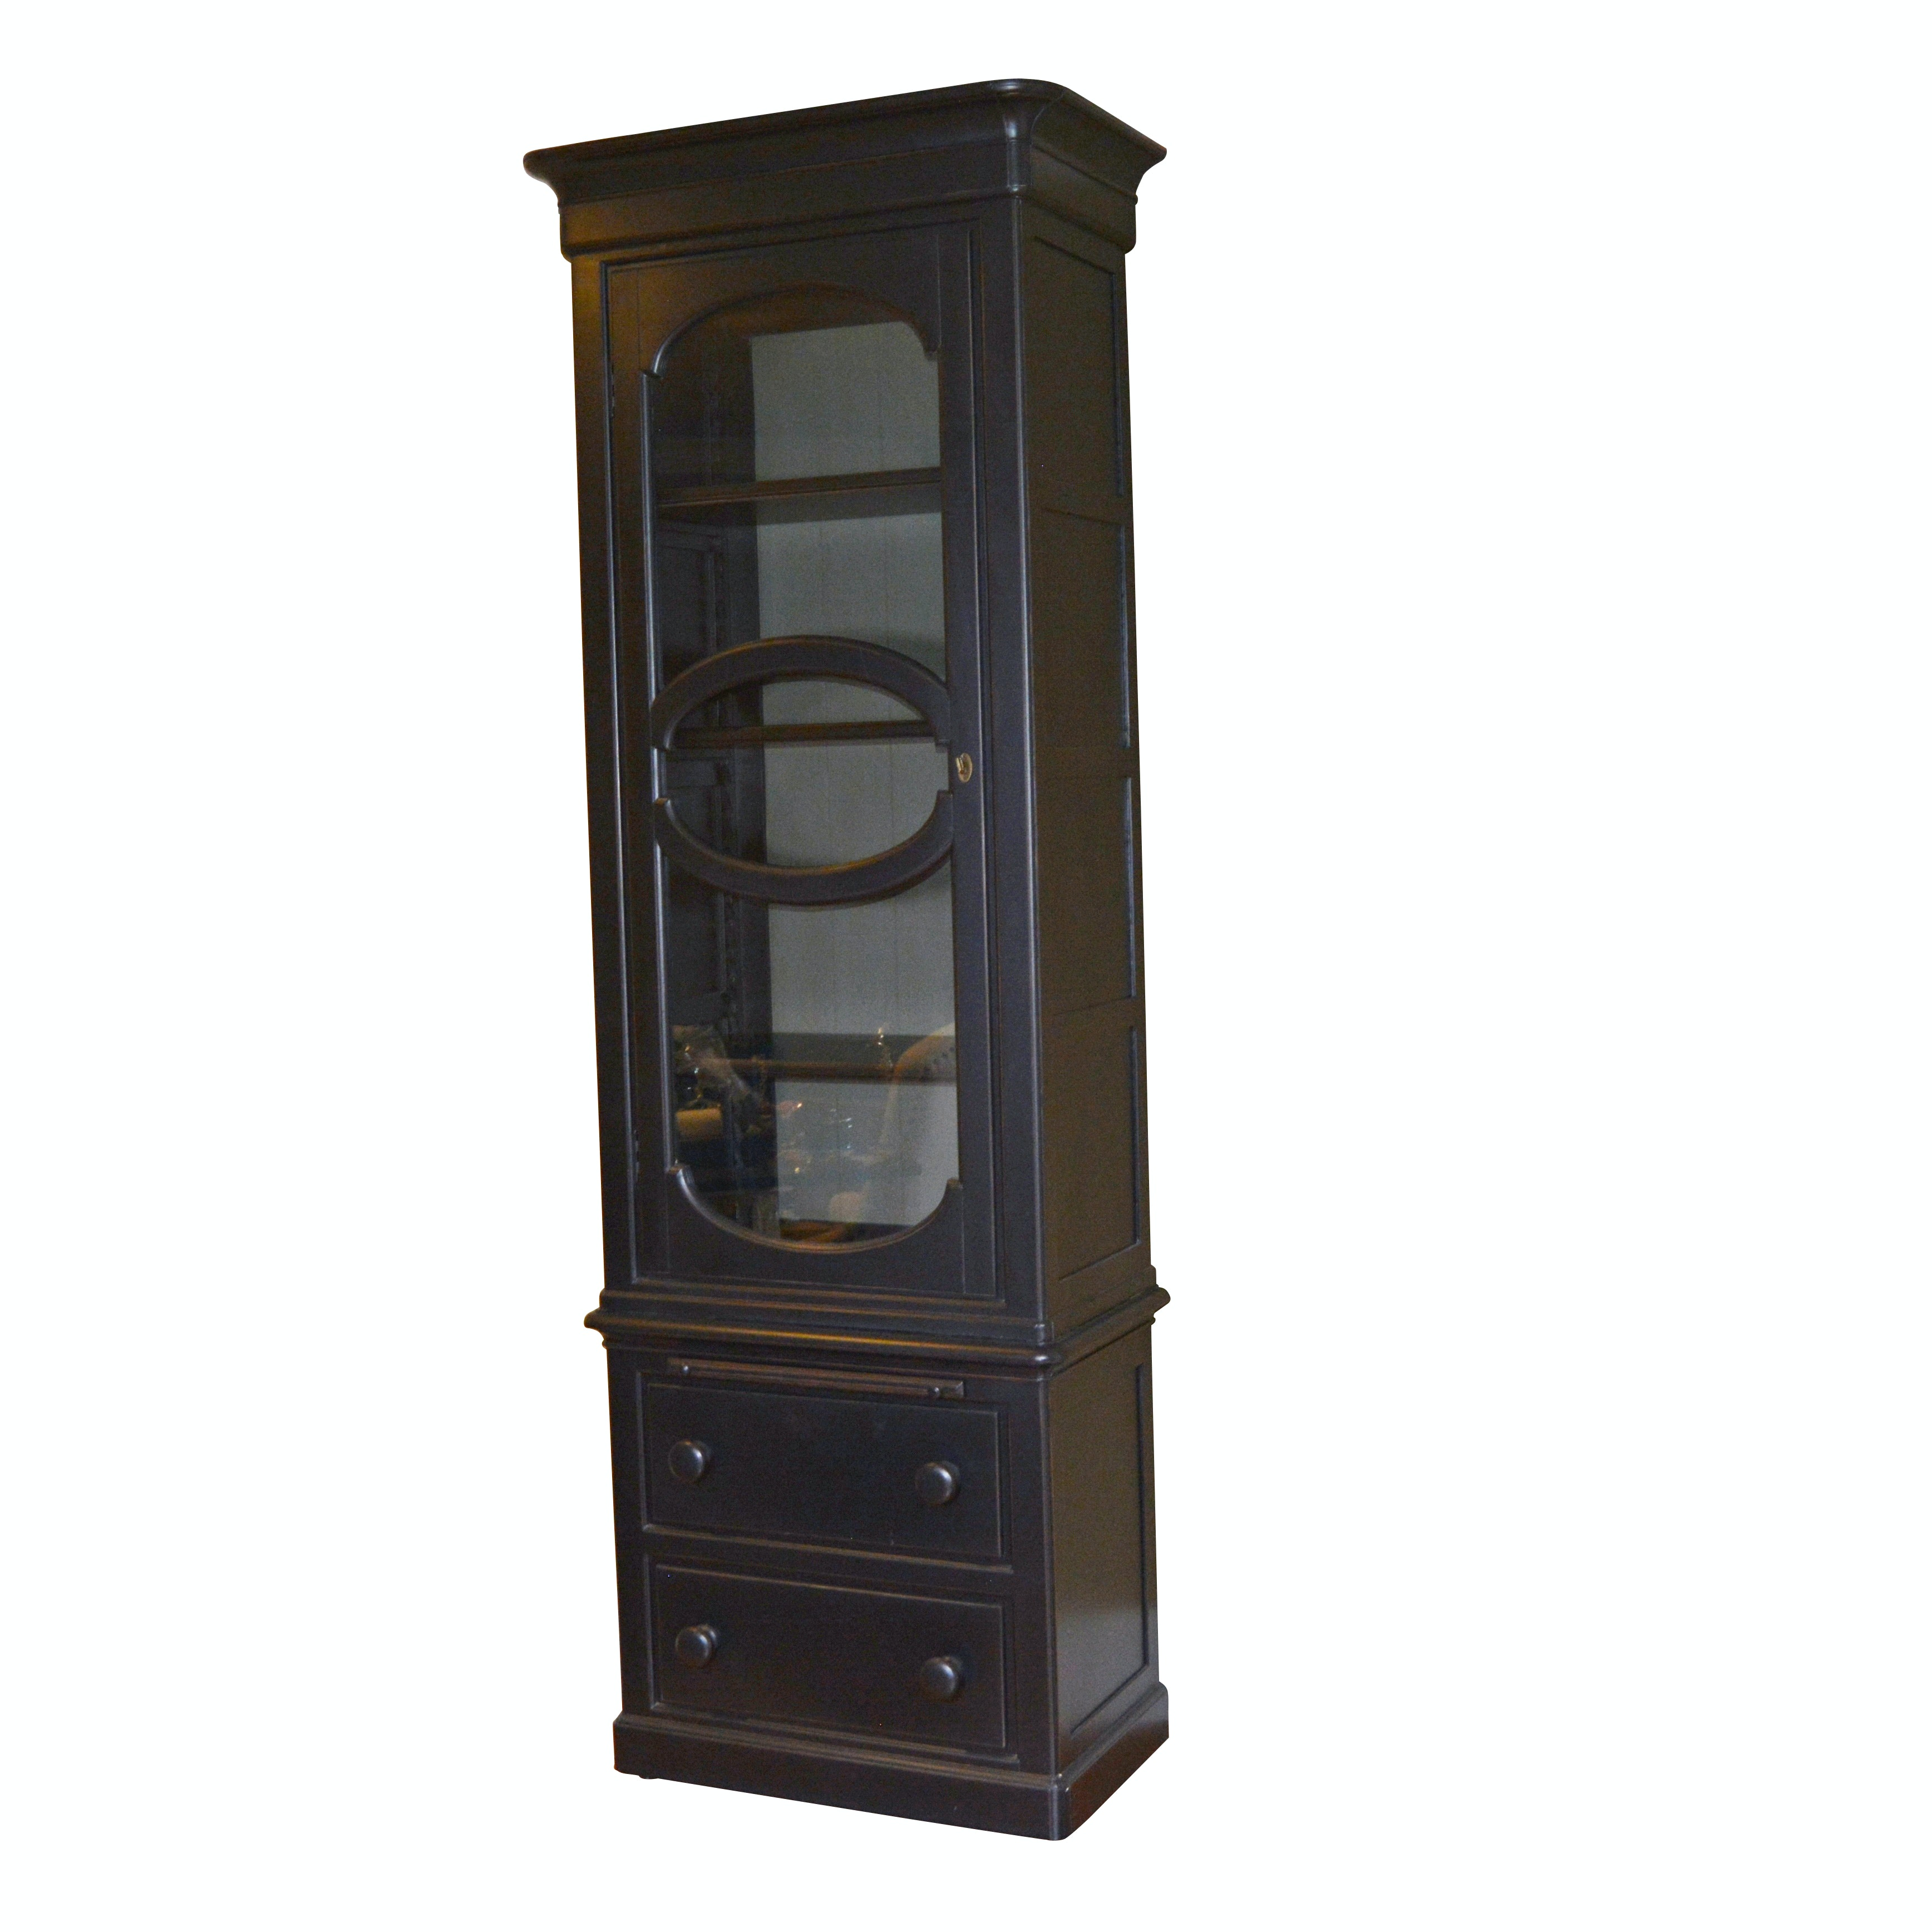 Contemporary Black Display Cabinet by London